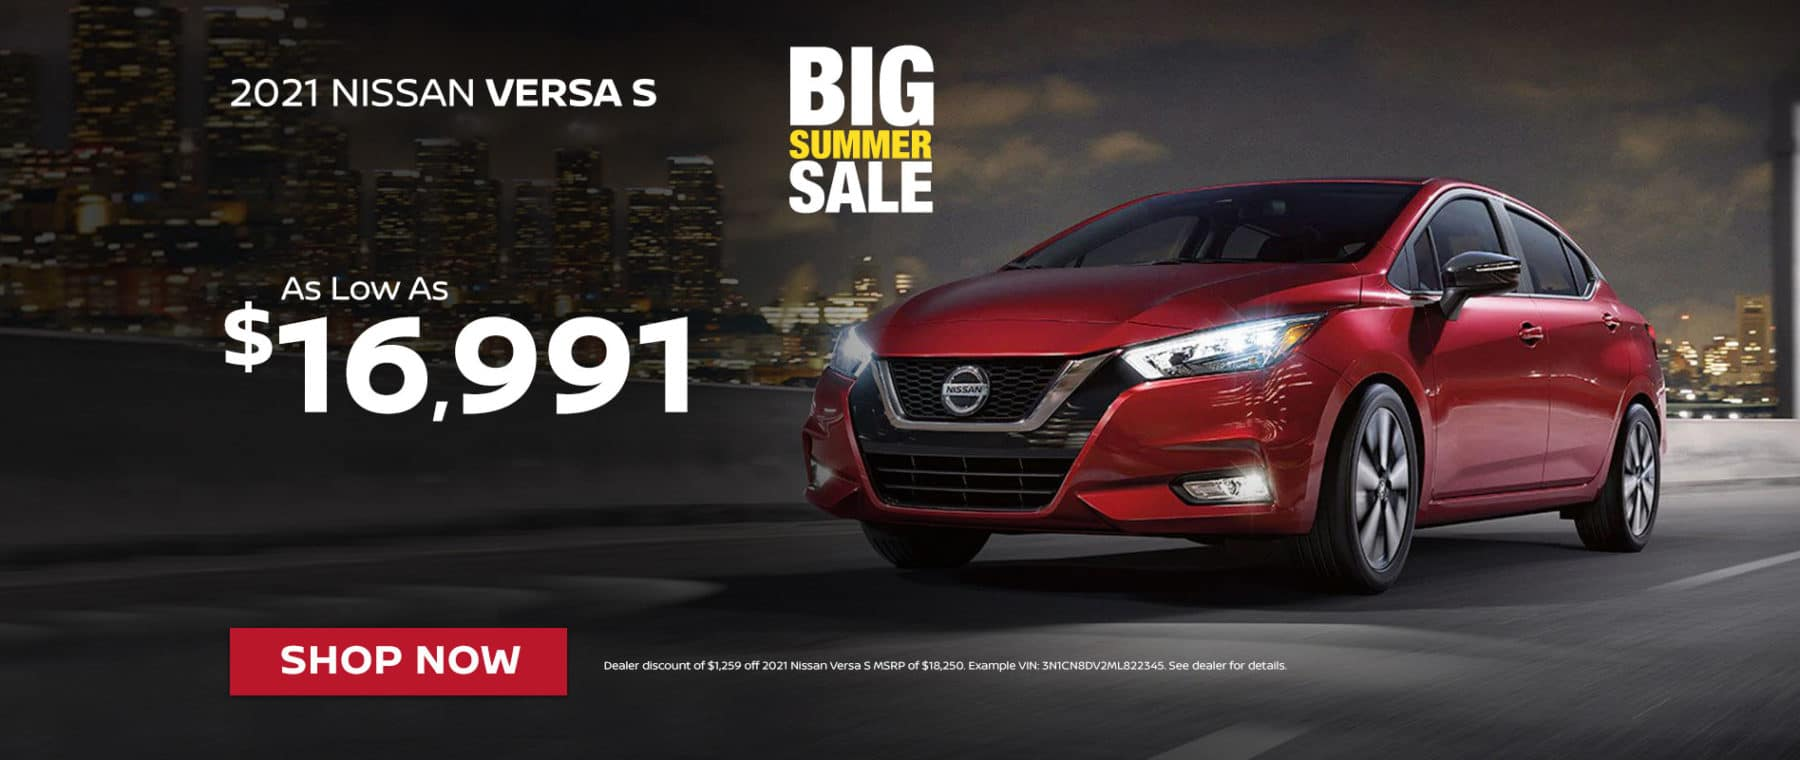 New 2021 Nissan Versa S For Sale In Greenville